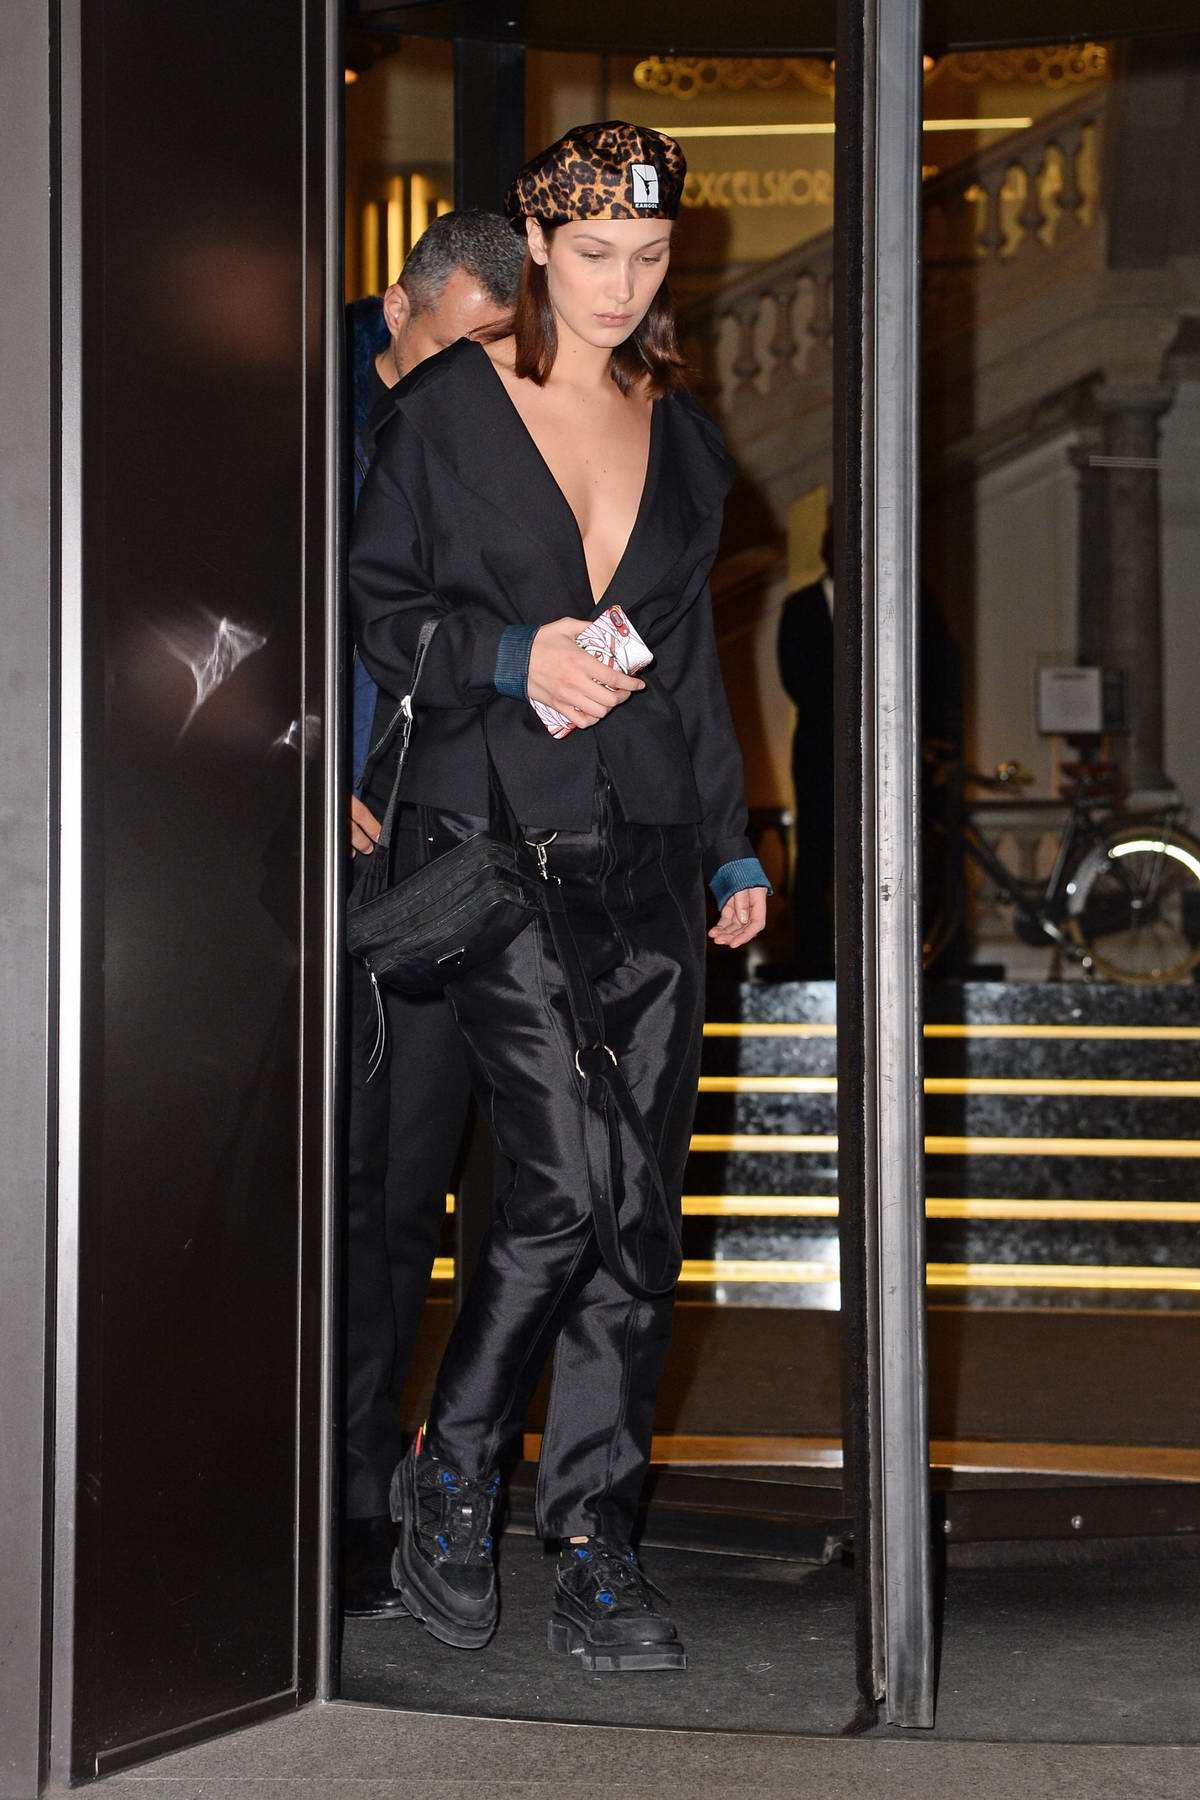 Bella Hadid leaves her hotel wearing an all black ensemble in Milan, Italy